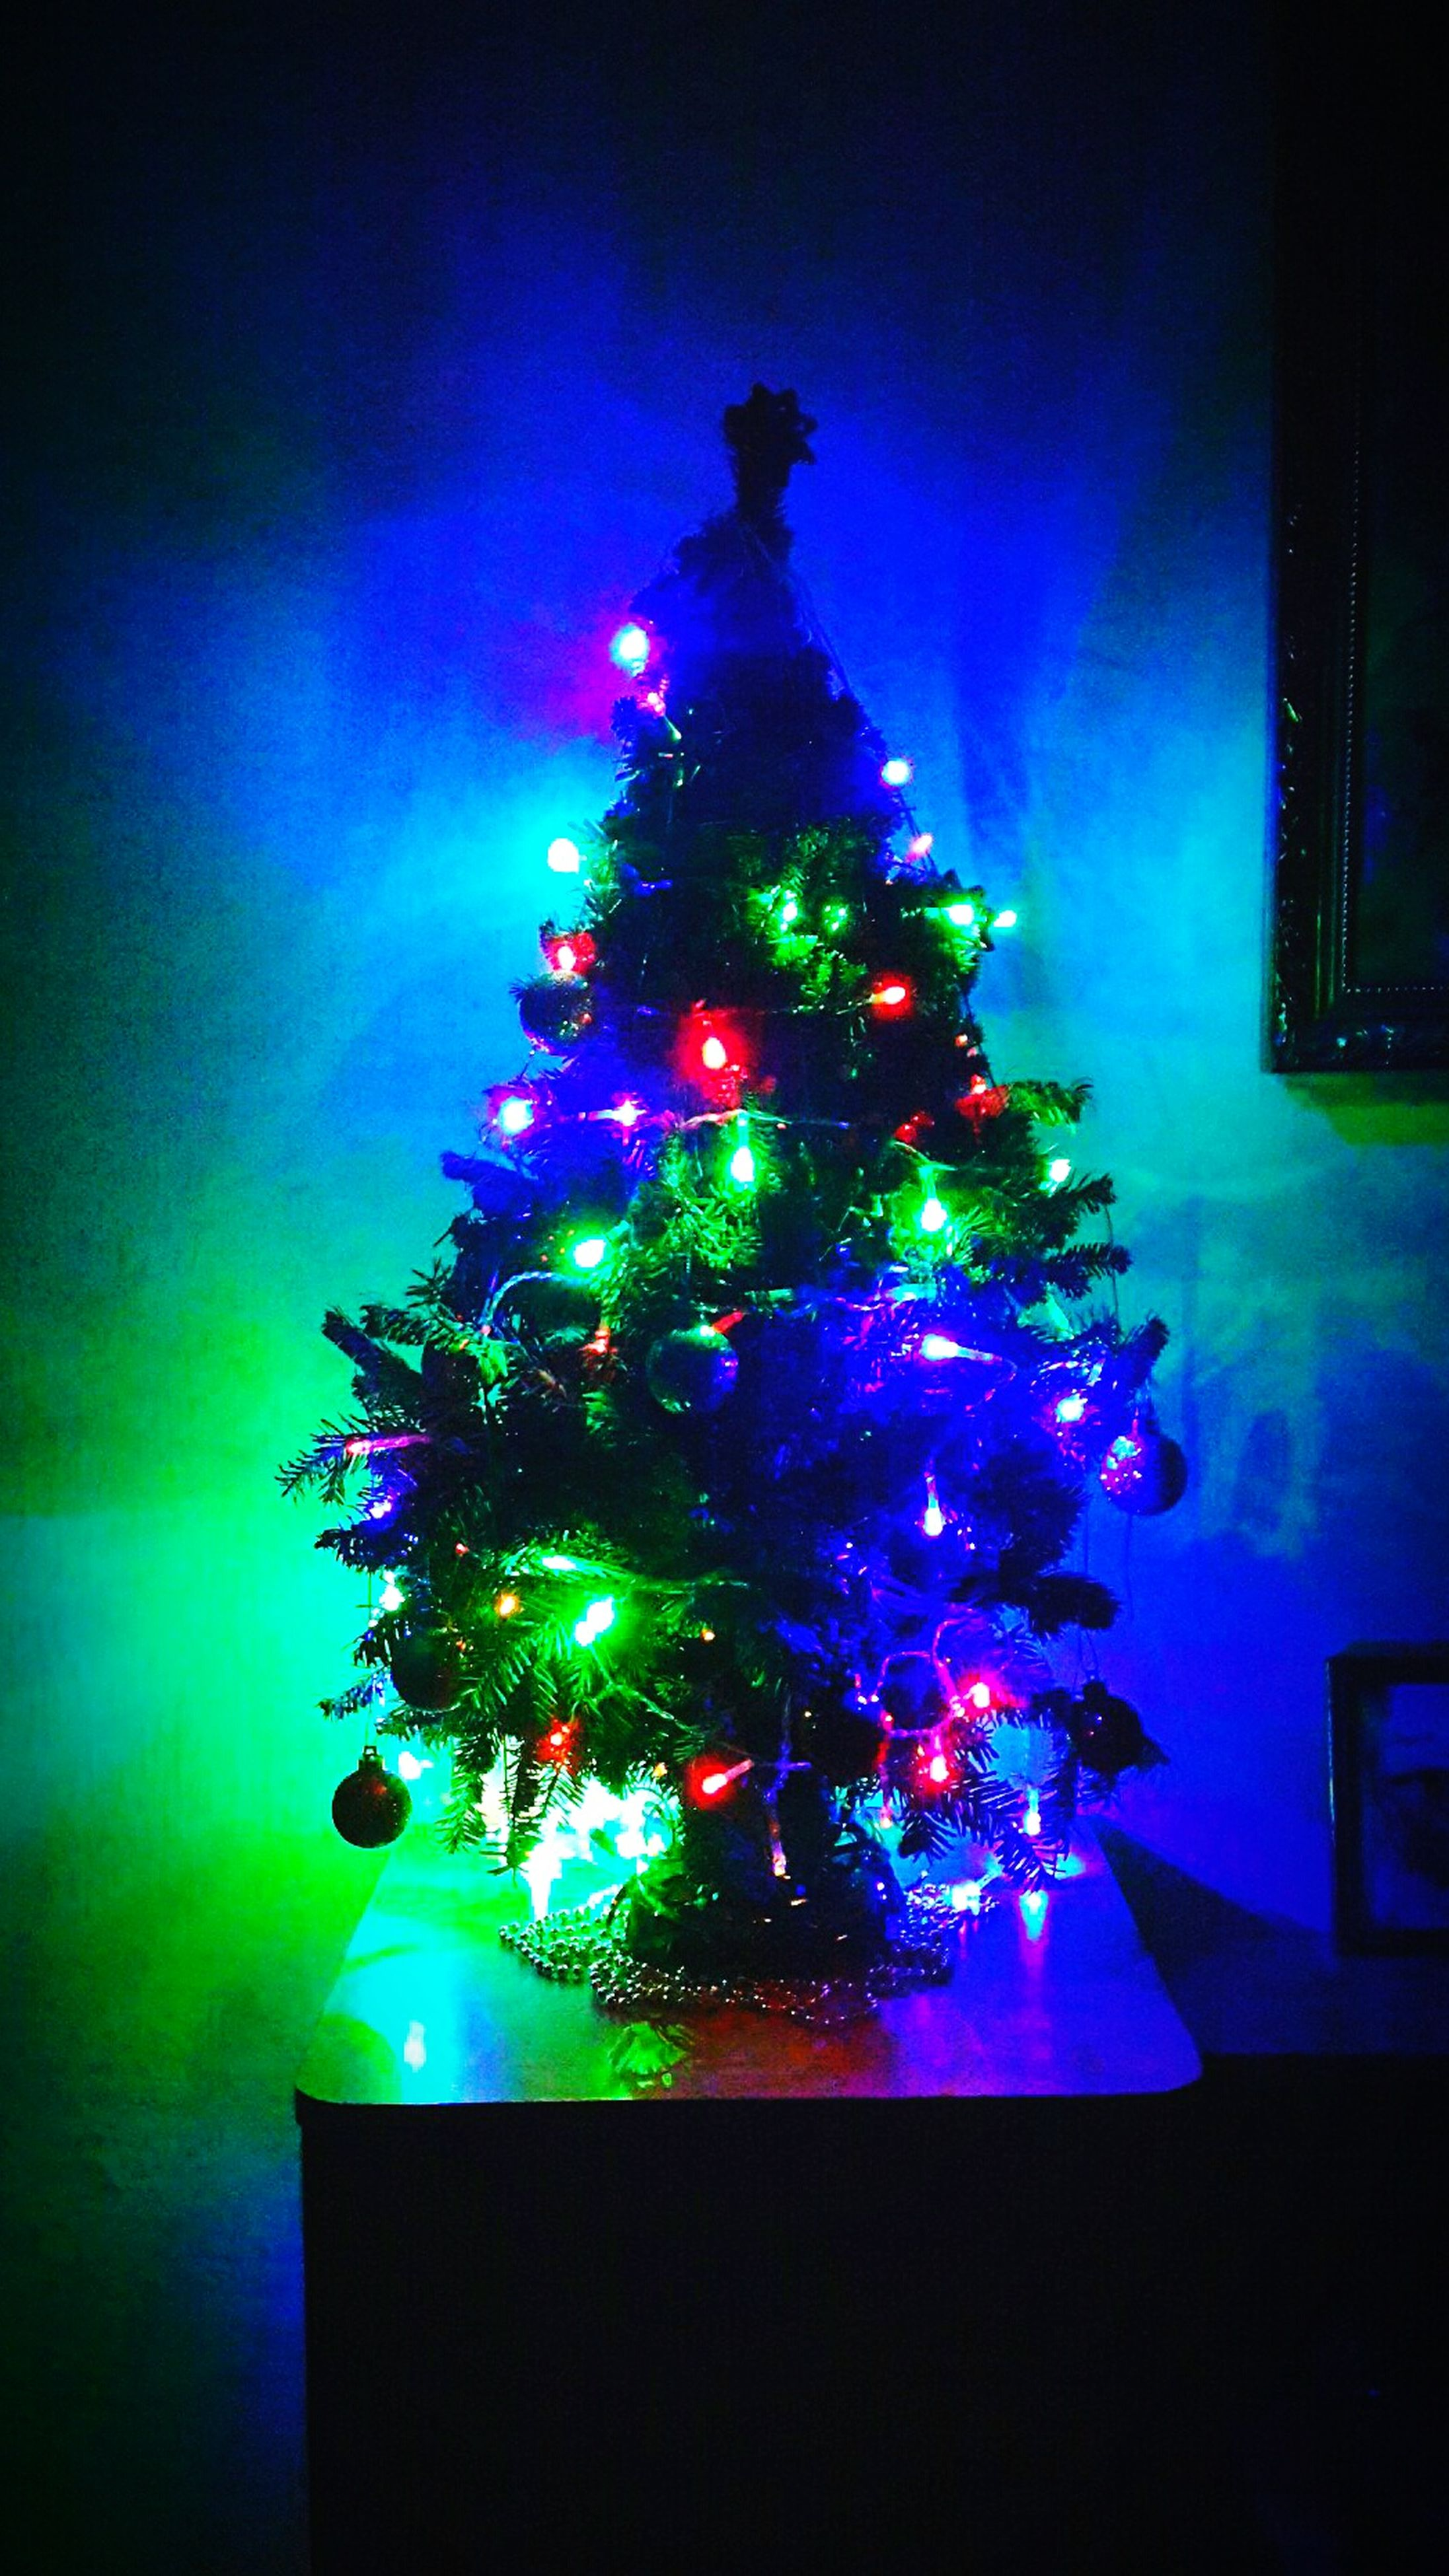 illuminated, night, celebration, lighting equipment, decoration, multi colored, christmas decoration, glowing, light - natural phenomenon, christmas, indoors, built structure, architecture, christmas tree, light, christmas lights, decor, building exterior, low angle view, firework display